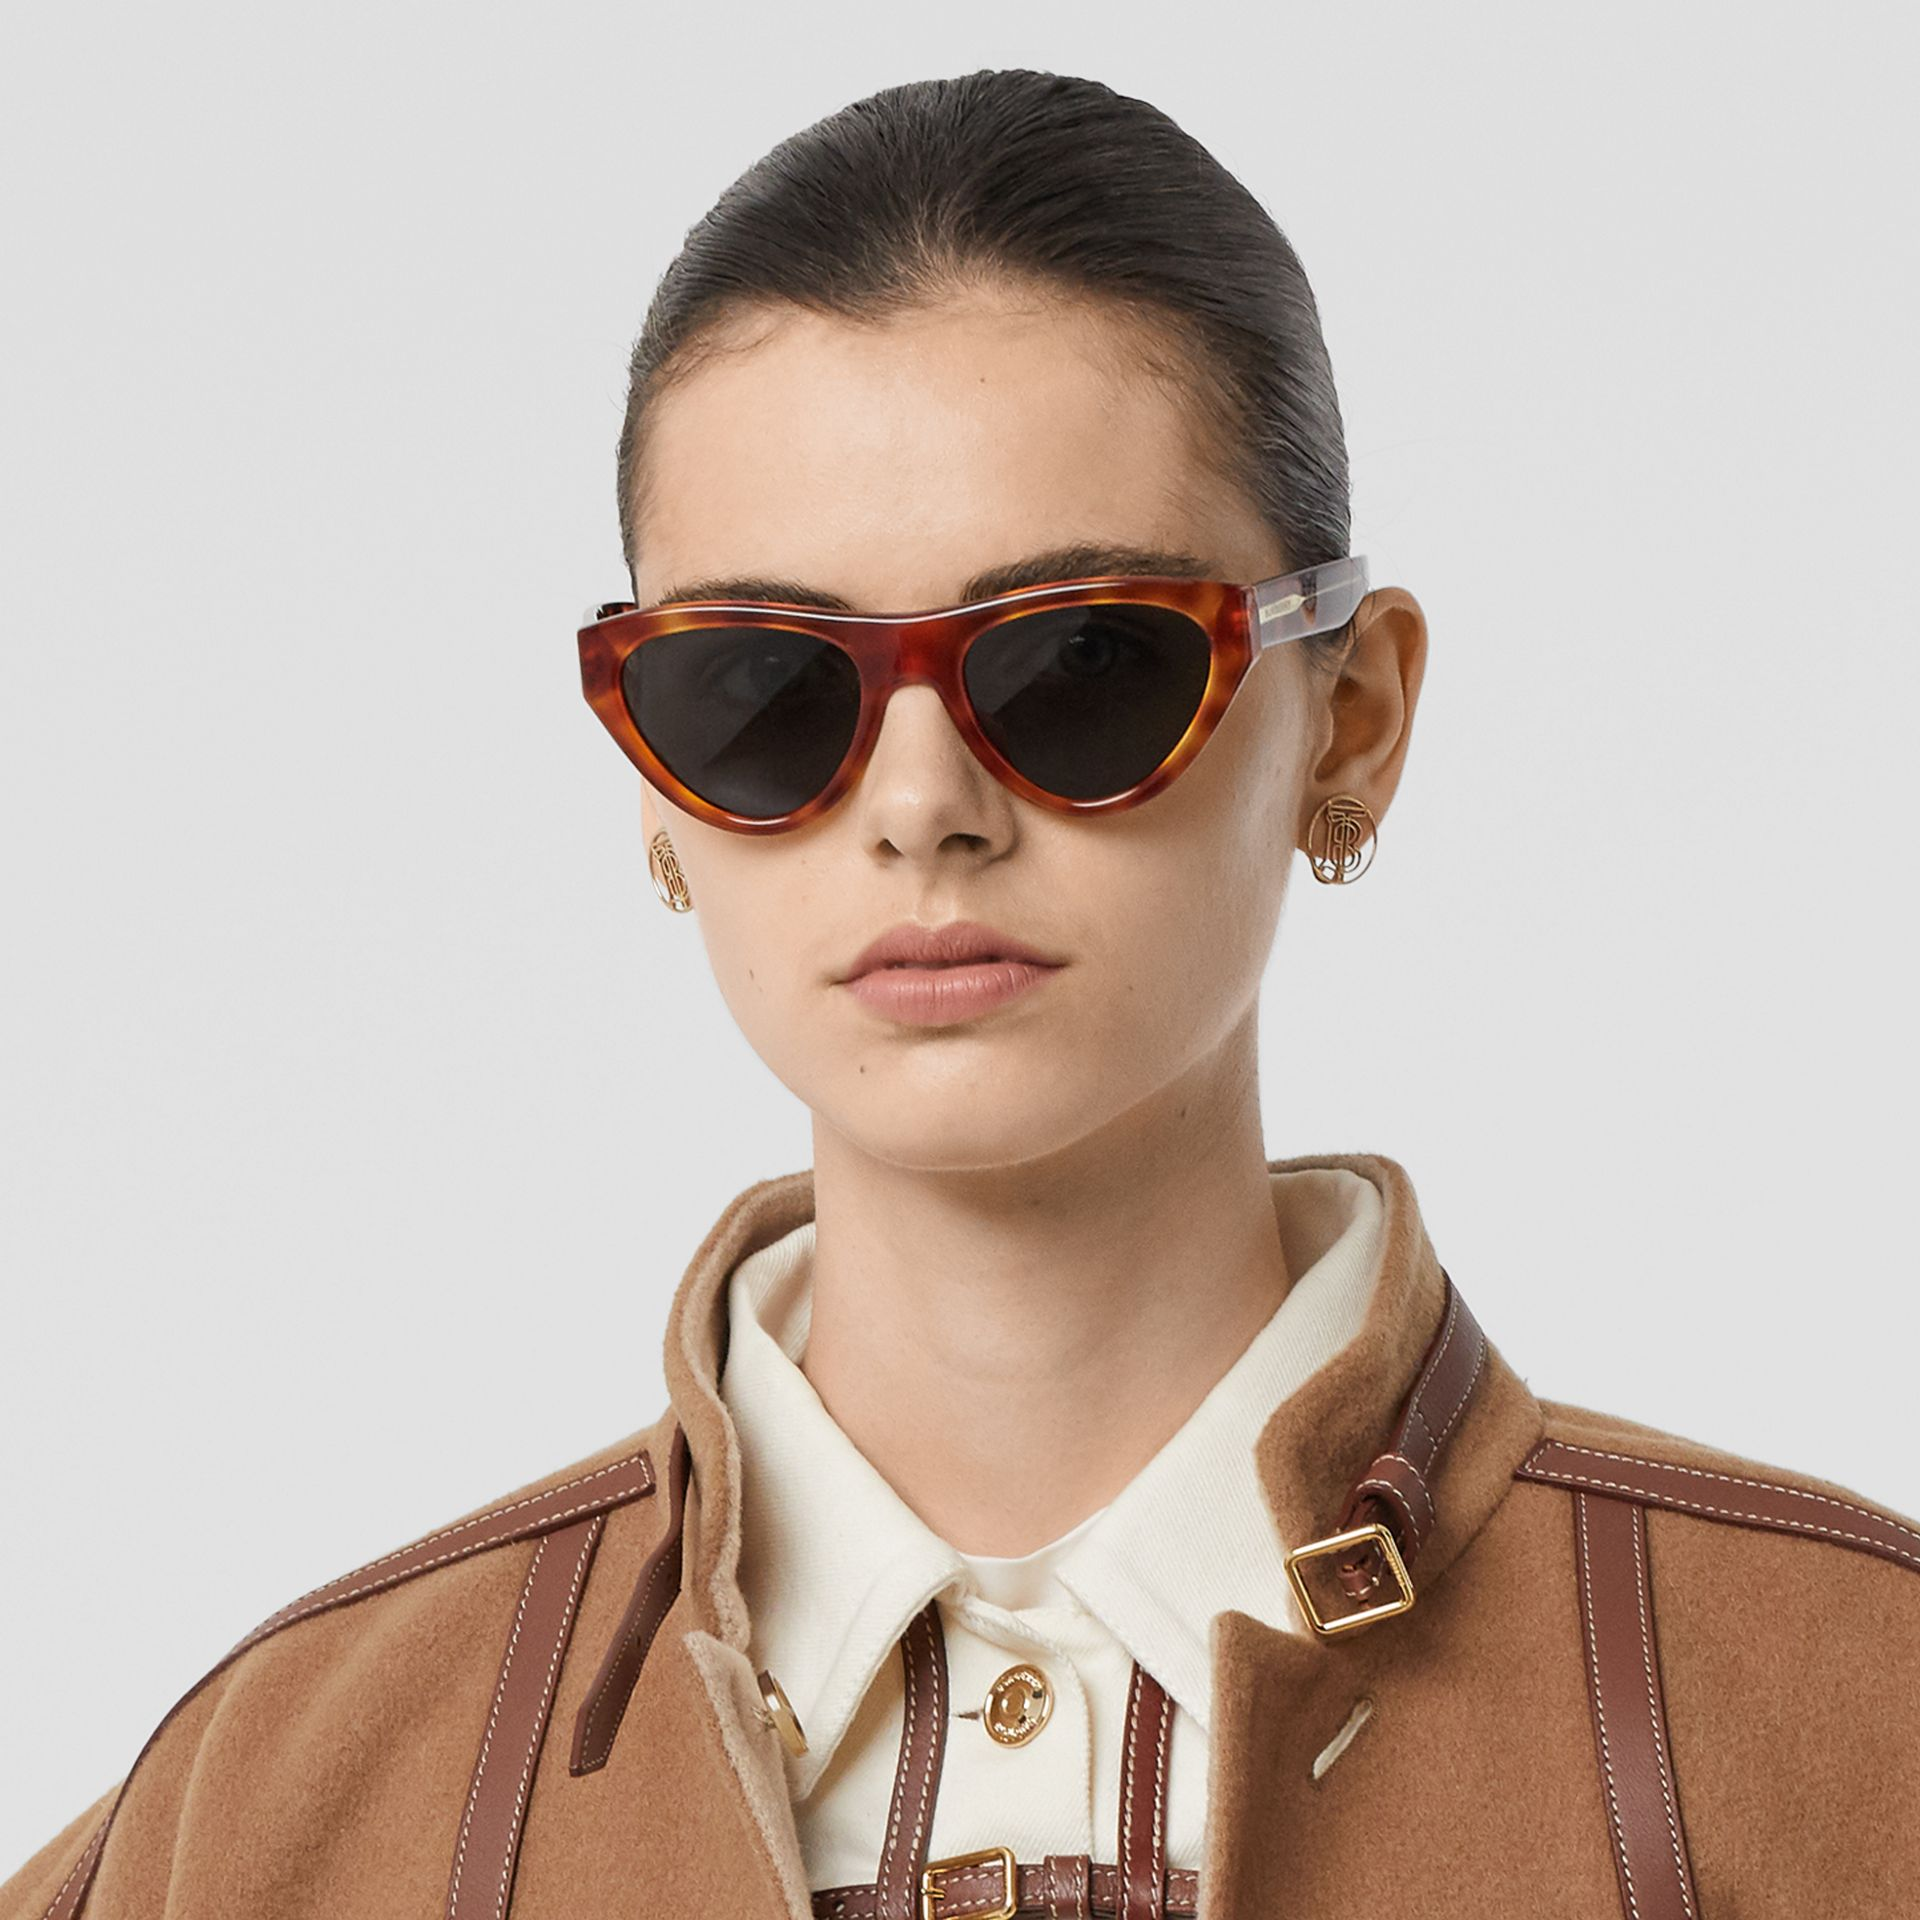 Triangular Frame Sunglasses in Amber Tortoiseshell - Women | Burberry - gallery image 2